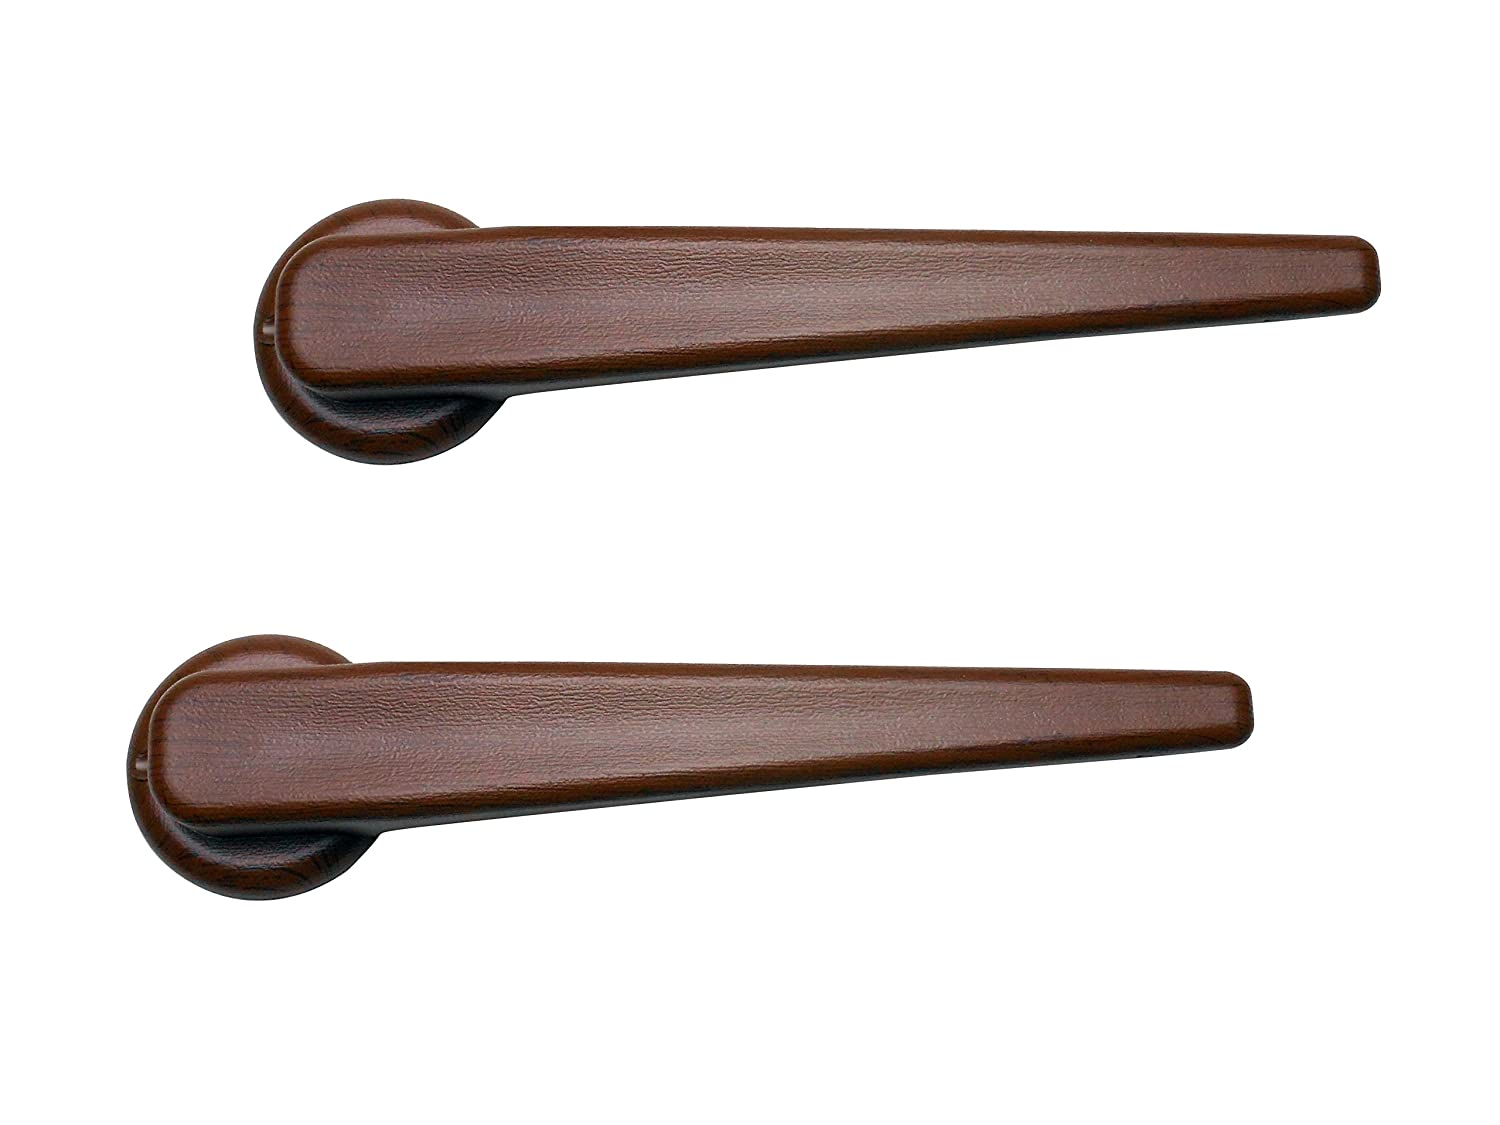 NAK Recliner Replacement Parts Lever Style Handle fits Many Manufacturer Brands Including Flexsteel, Chair Release Handle for Sofa, Couch or Recliner (Teak, 2)